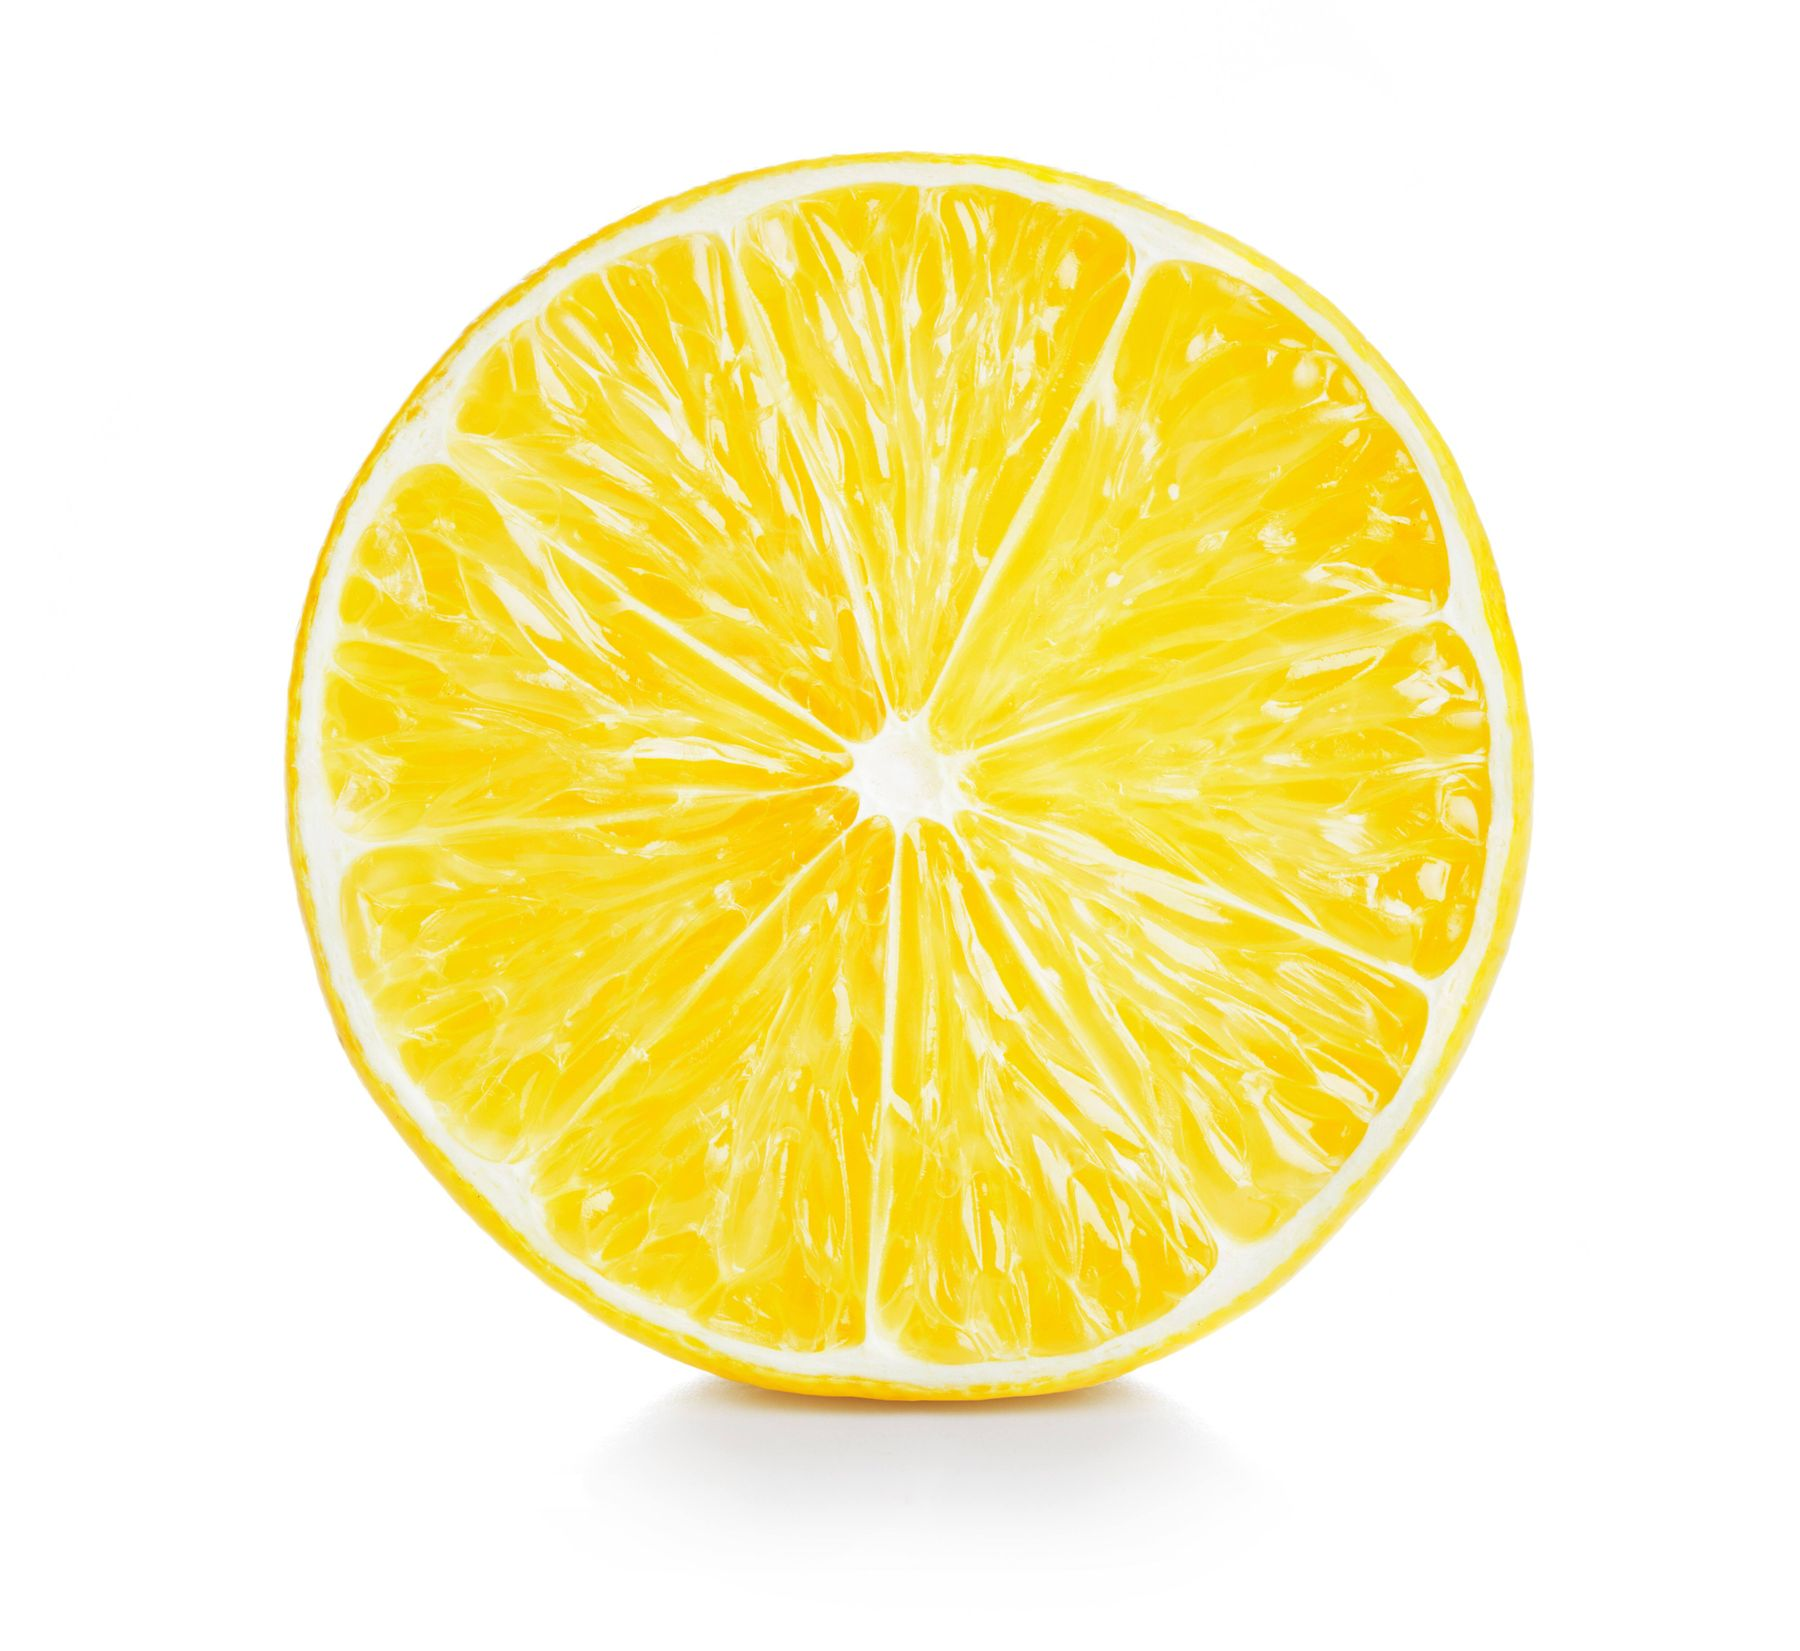 Lemons to clean large surfaces